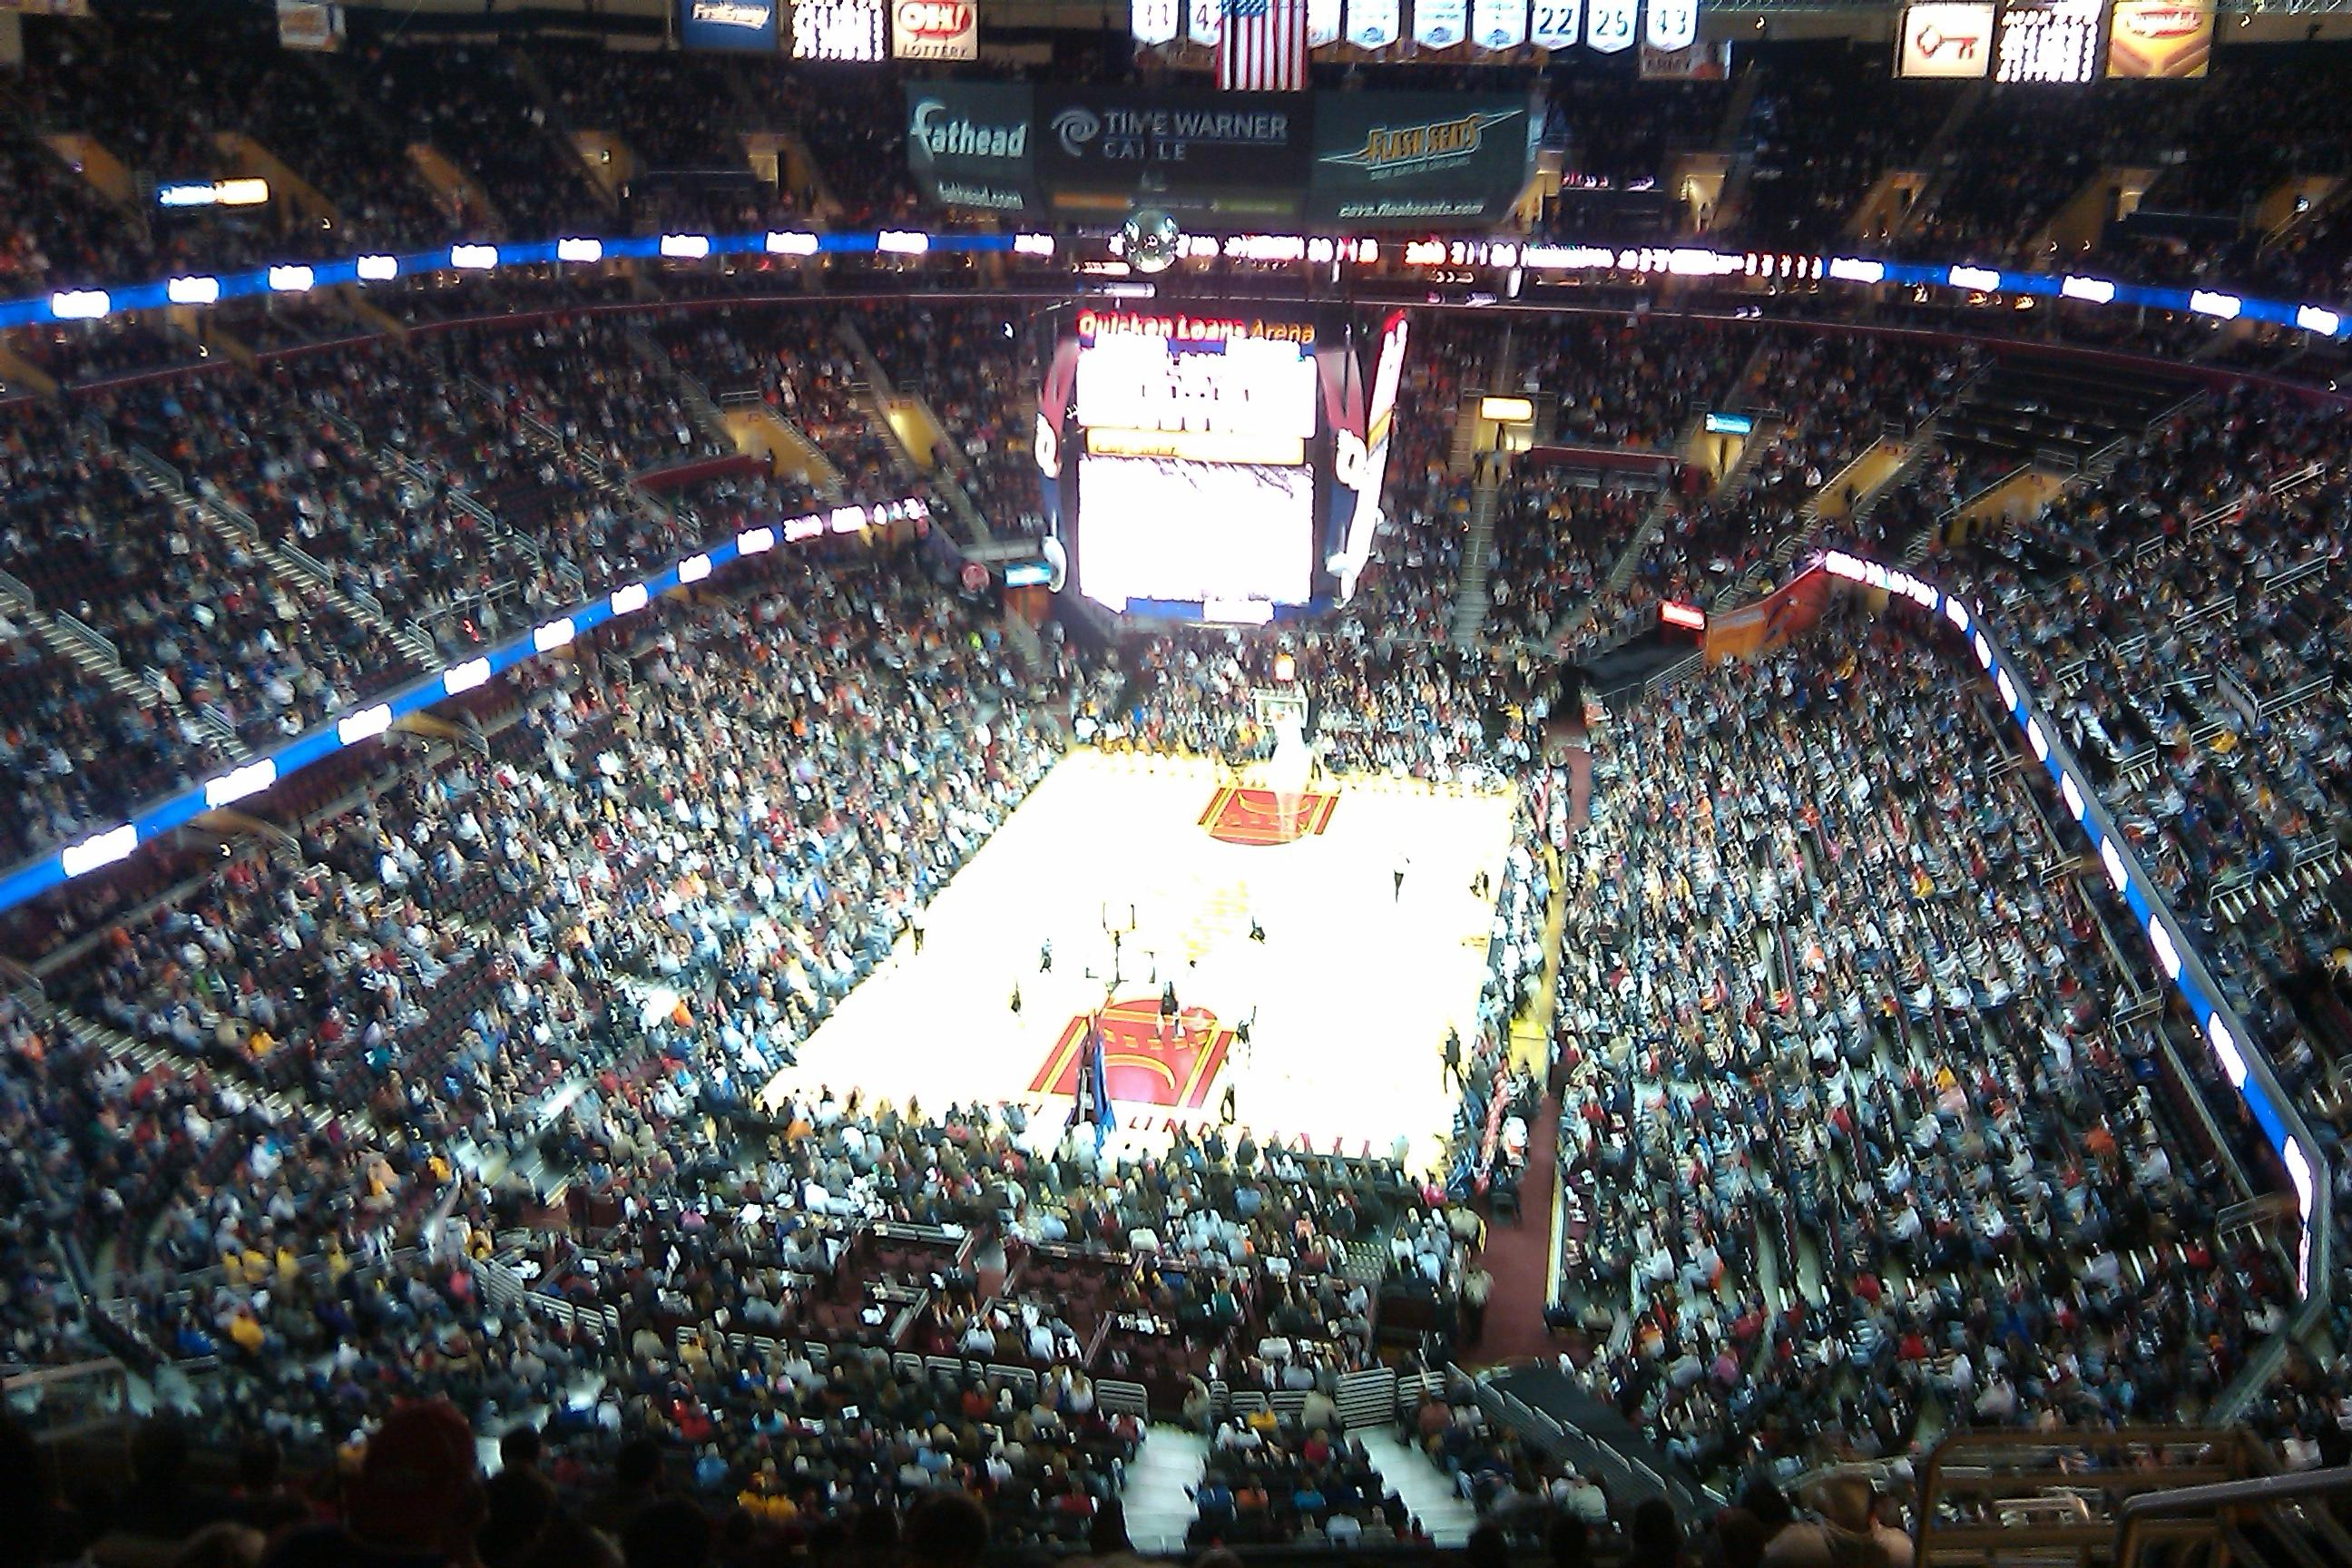 Seating view for Quicken Loans Arena Section 218 Row 12 Seat 17